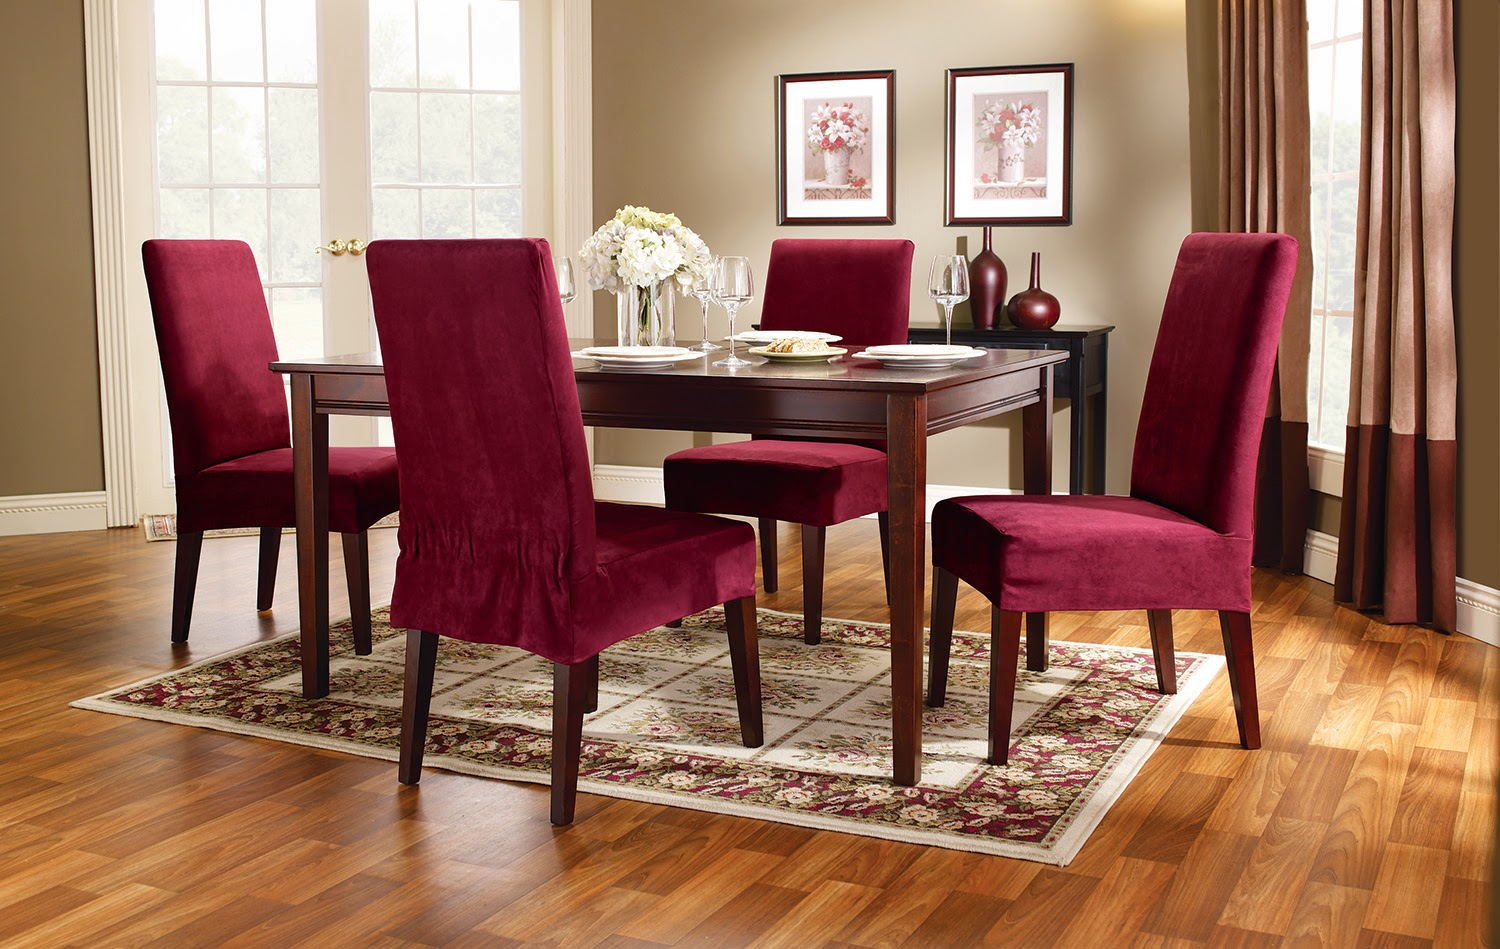 dining room chair slipcovers for on budget re-decoration | custom